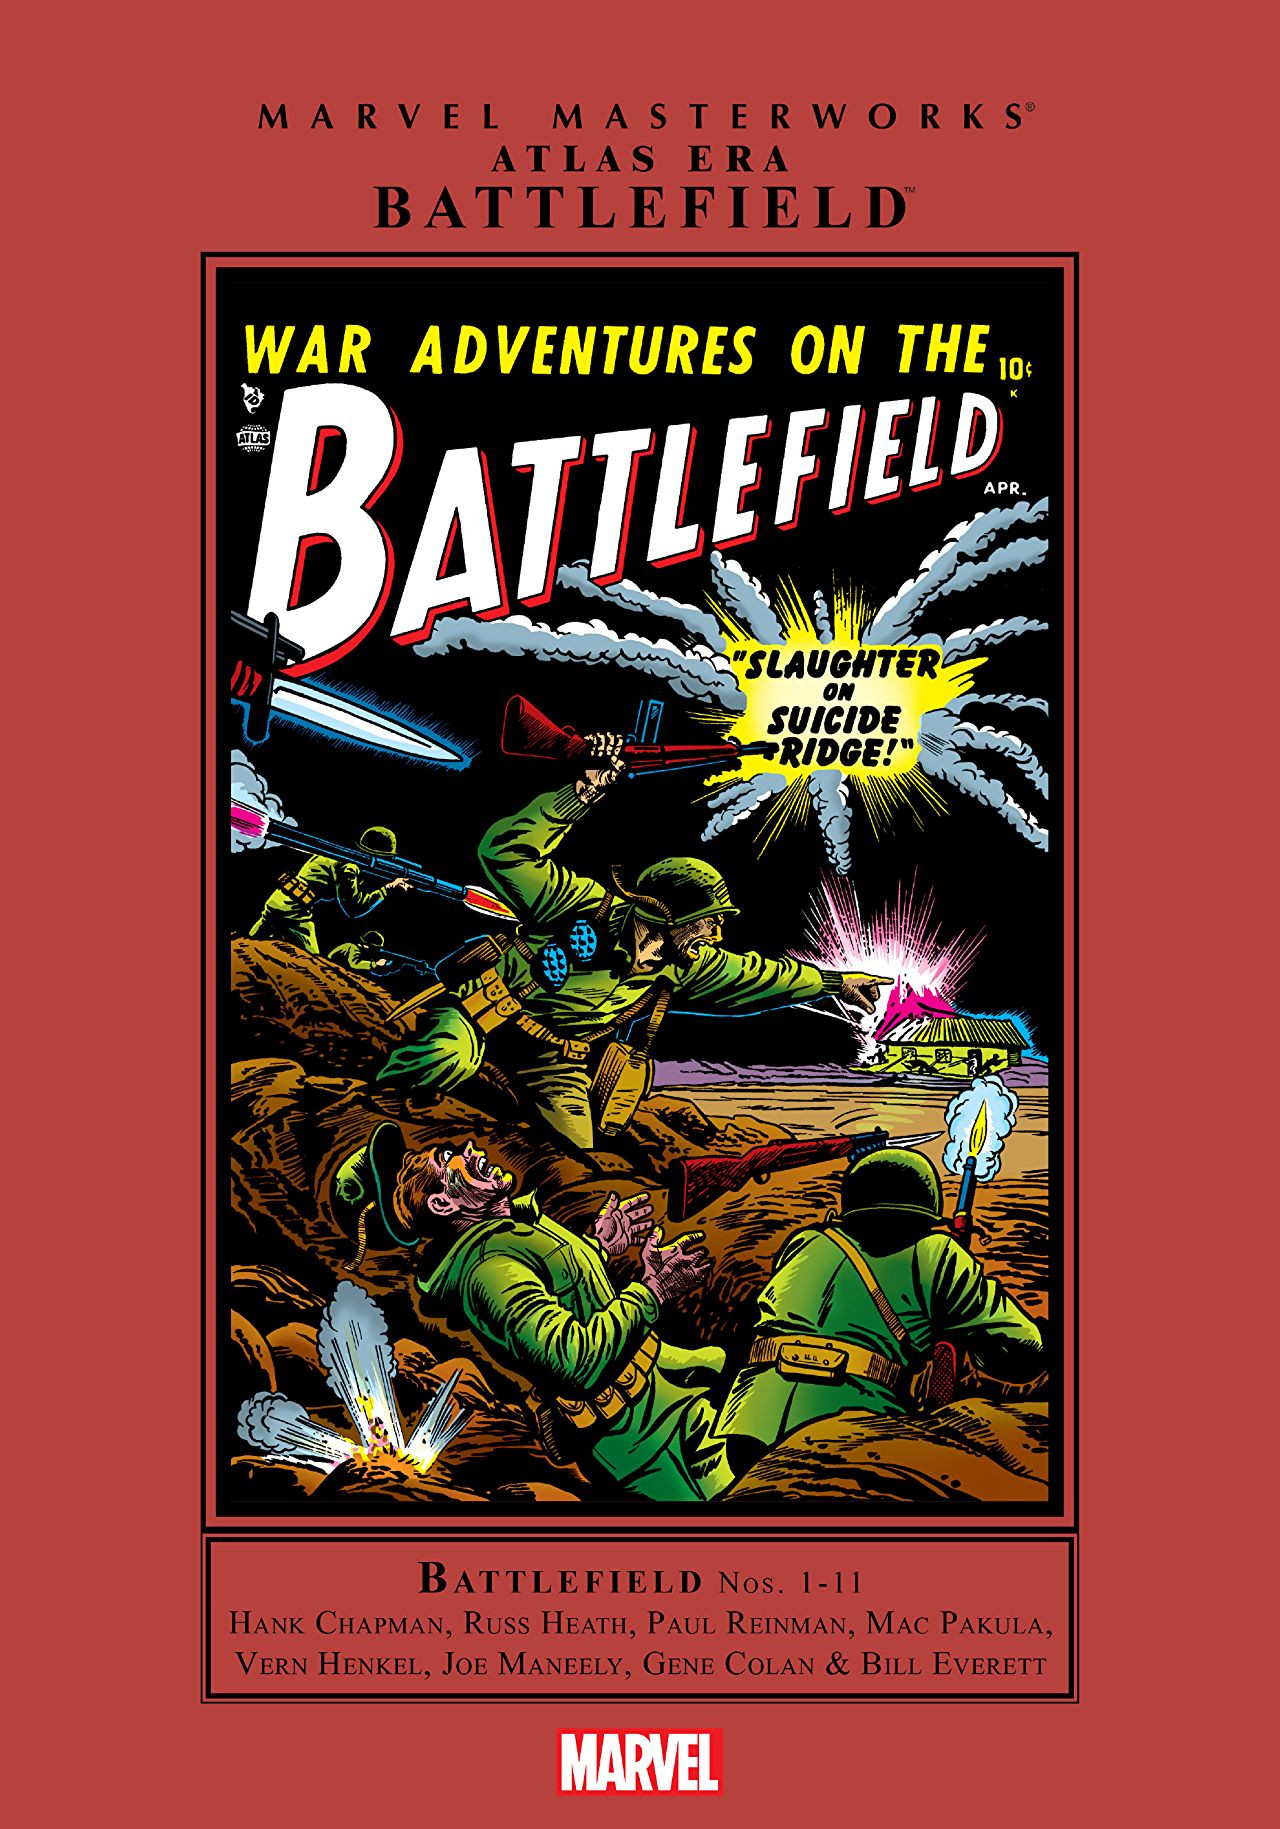 Marvel Masterworks Atlas Era Battlefield Vol 1 1.jpg